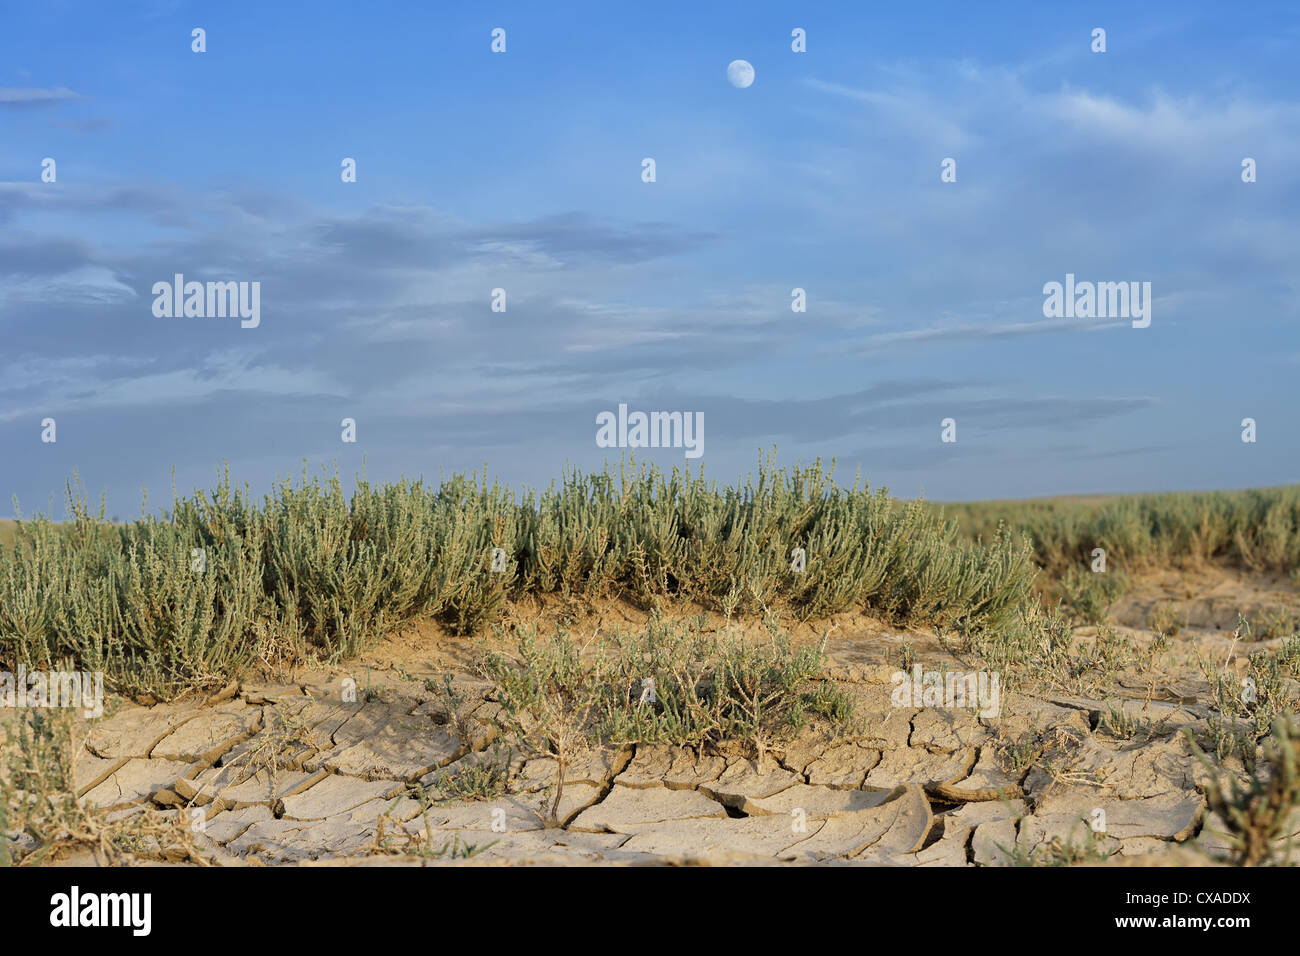 arid, background, blue, climate, climate change, cracked, deserted, desiccated, disaster, drought, dry, earh, ecology, - Stock Image